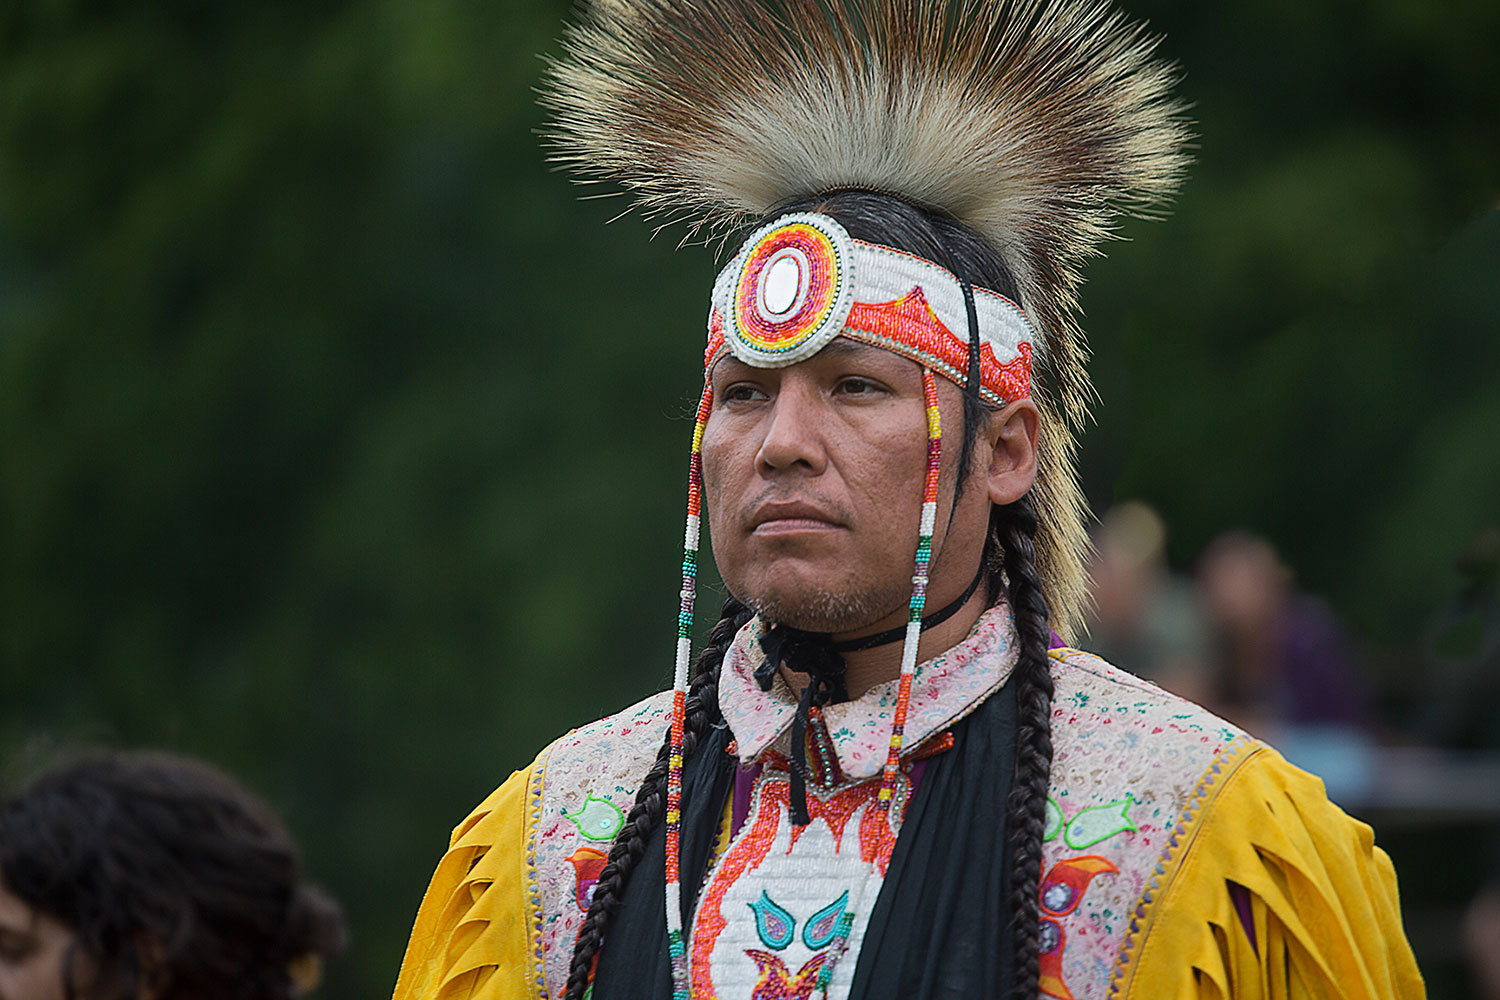 Grand Entry of Elder, Six Nations Powwow